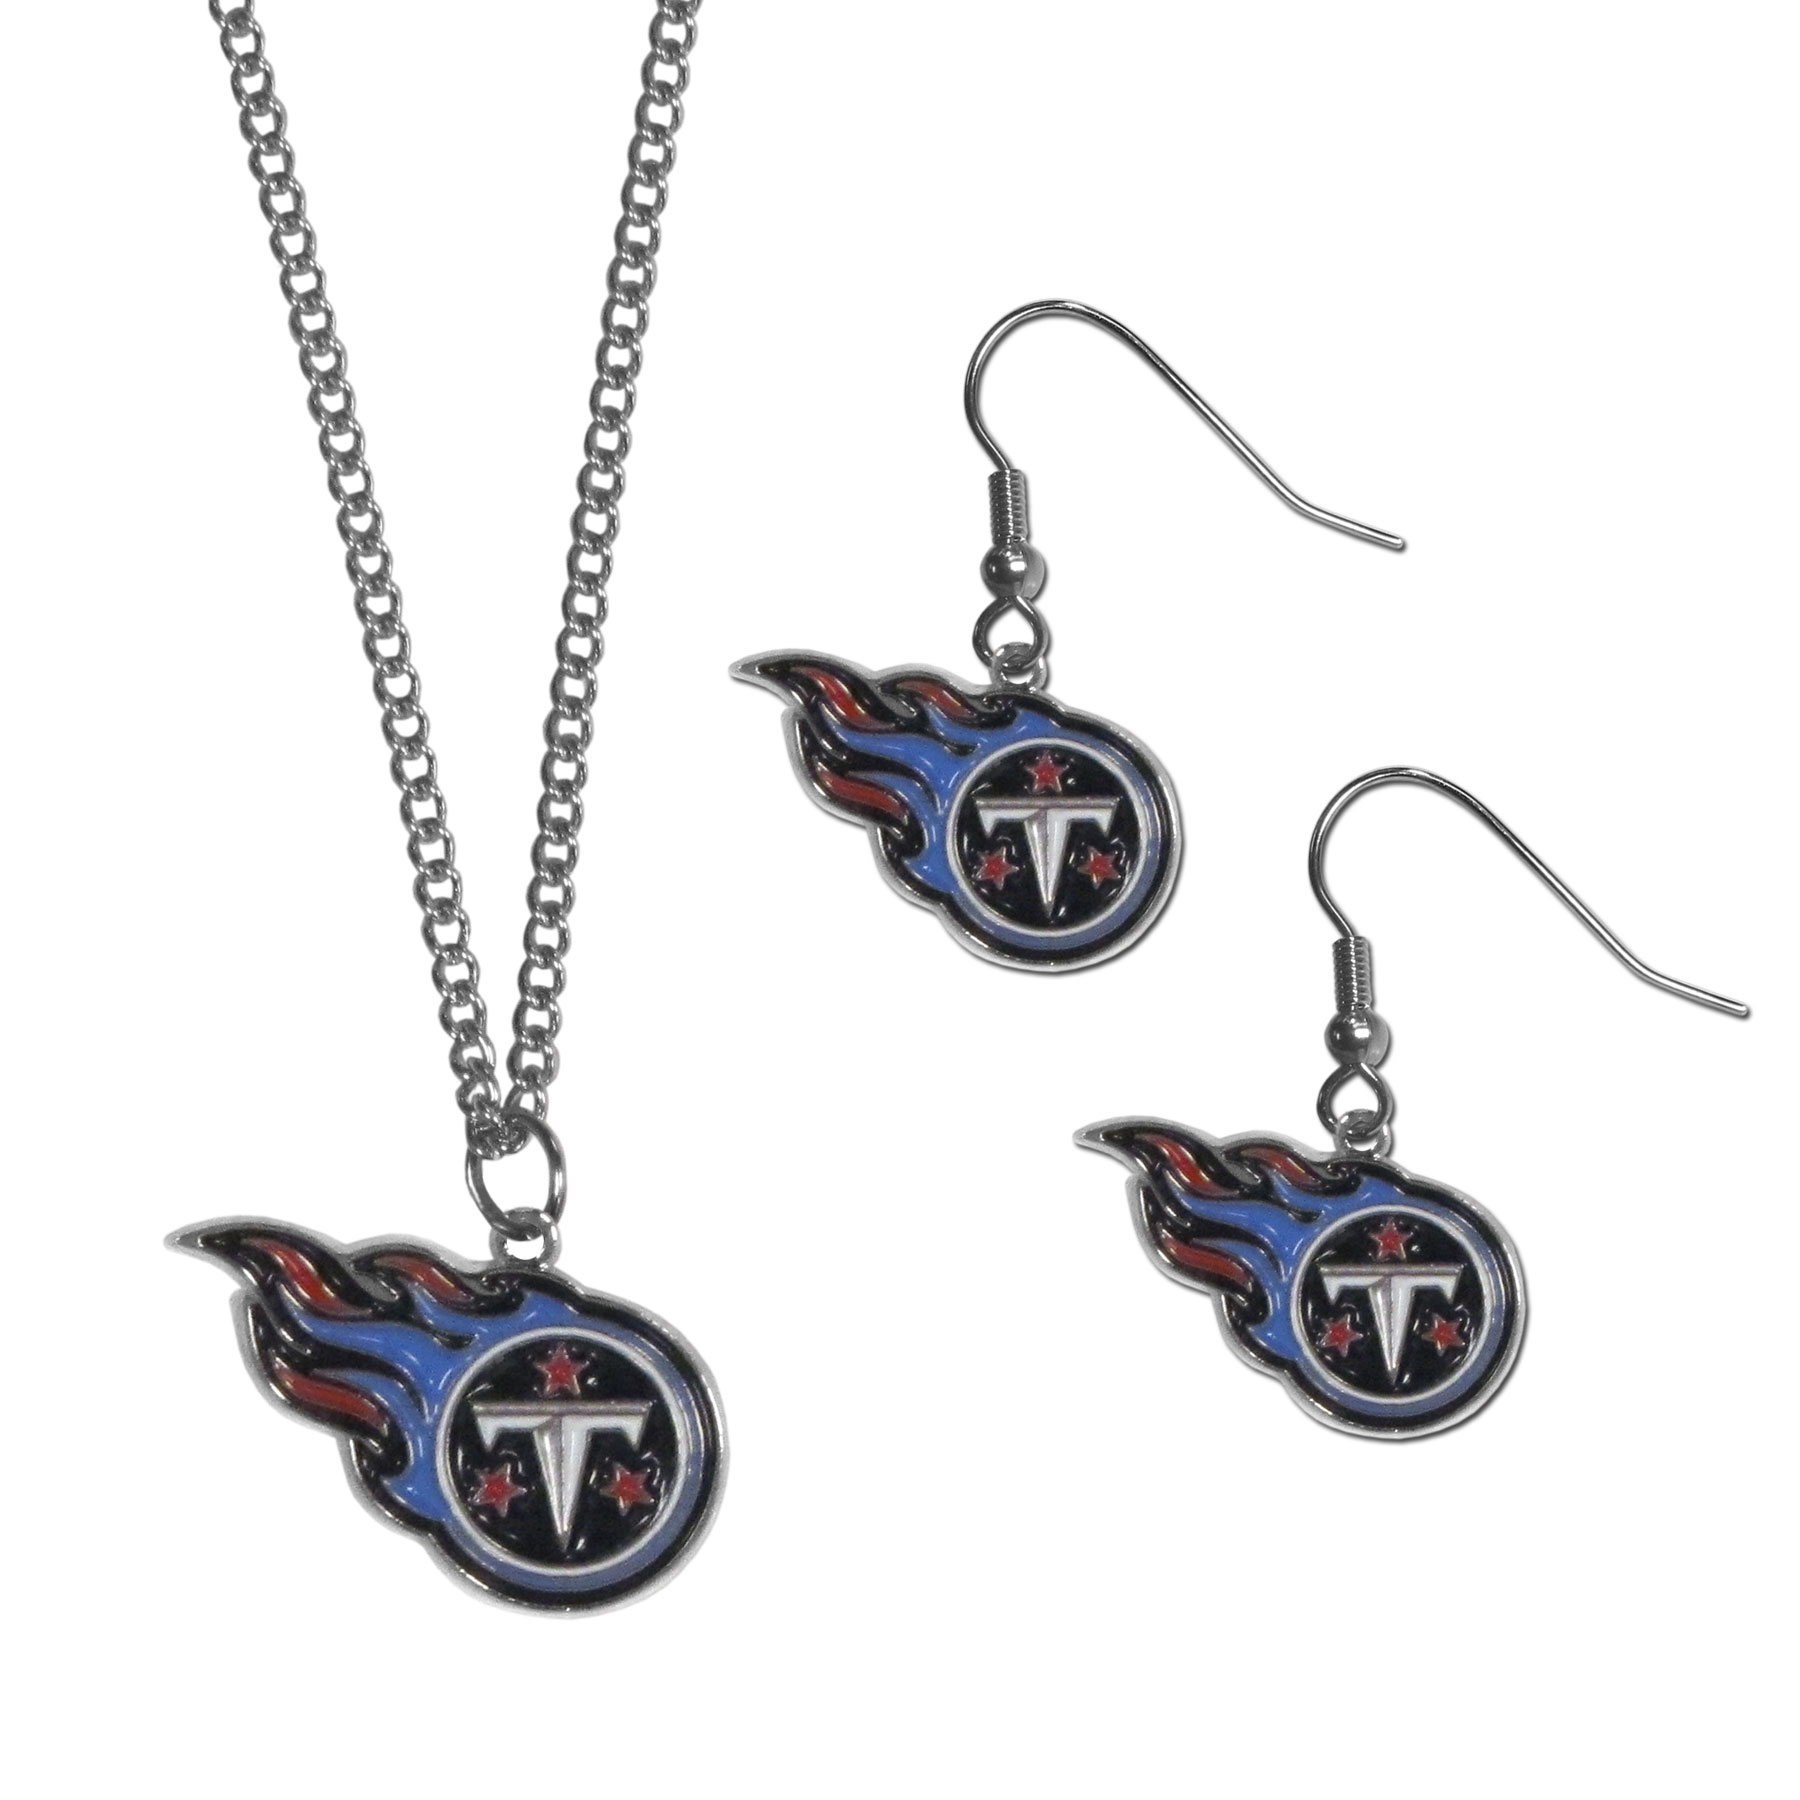 Tennessee Titans Dangle Earrings and Chain Necklace Set - This classic jewelry set contains are most popular Tennessee Titans dangle earrings and 22 inch chain necklace. The trendy, dangle earrings are lightweight and feature a fully cast metal team charm with enameled team colors. The matching necklace completes this fashion forward combo and is a spirited set that is perfect for game day but nice enough for everyday.